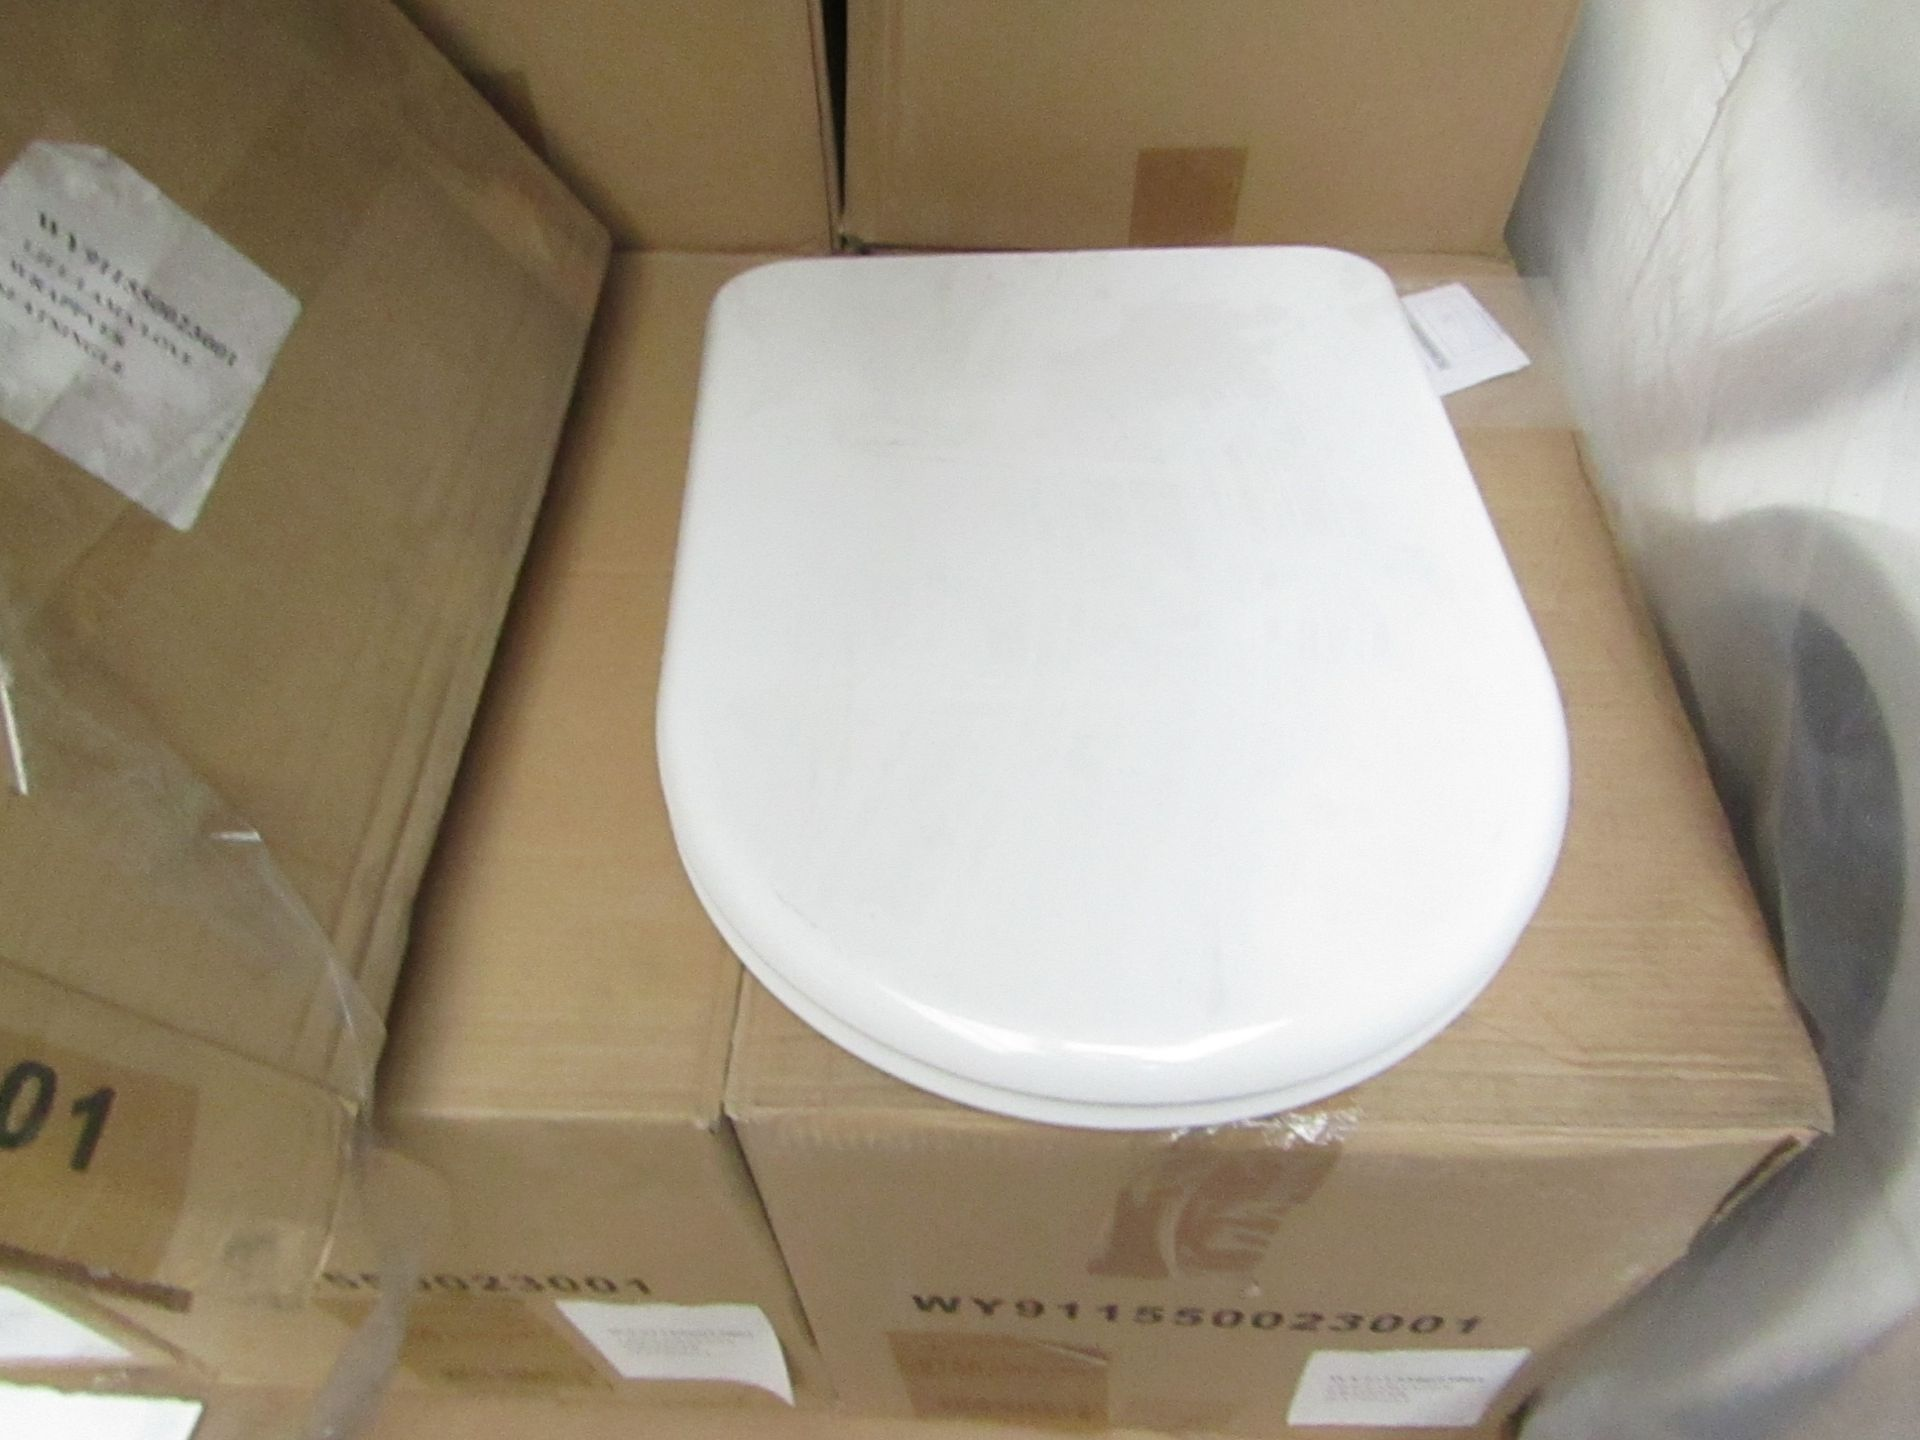 Laufen made toilet seat for Life/Love/Lama Models, model no. 89156 barcode 5704173255920 new and